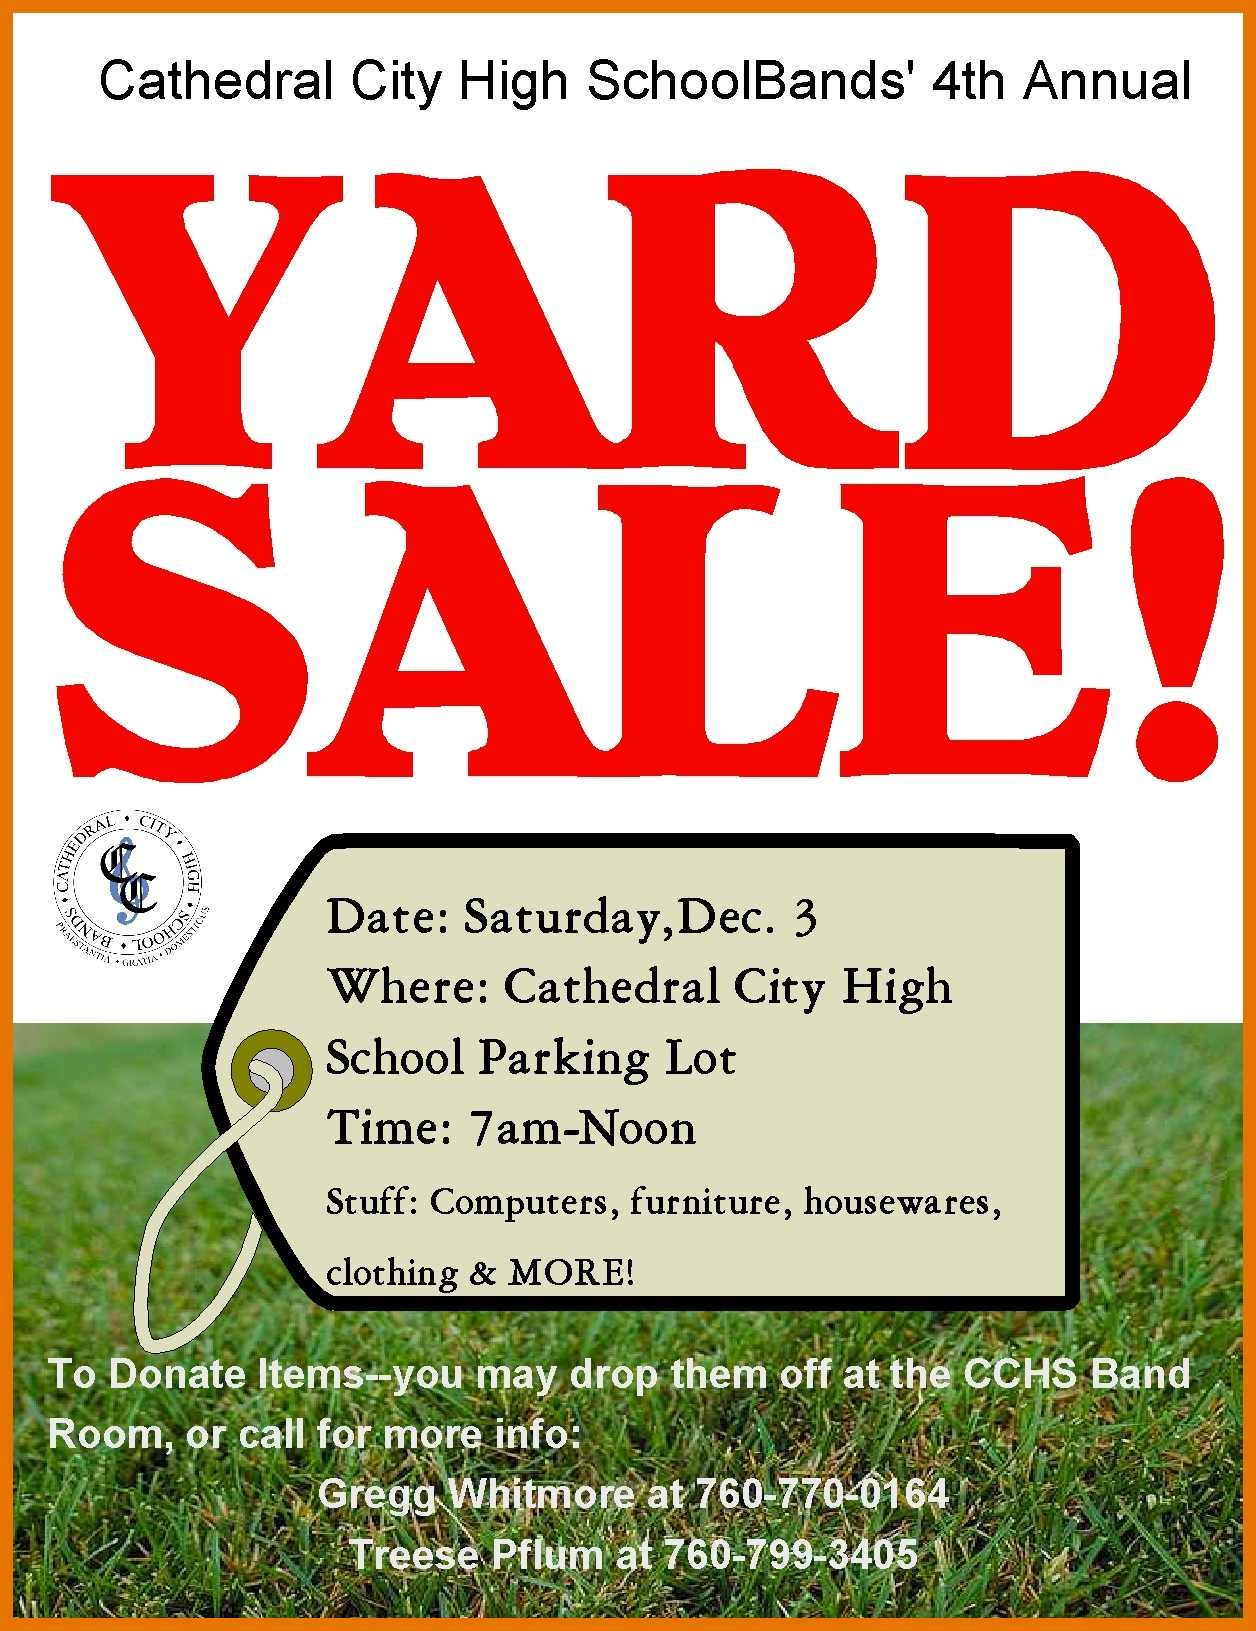 For Sale Flyer Template Word  Juliasrestaurantnj Within Yard Sale Flyer Template Word